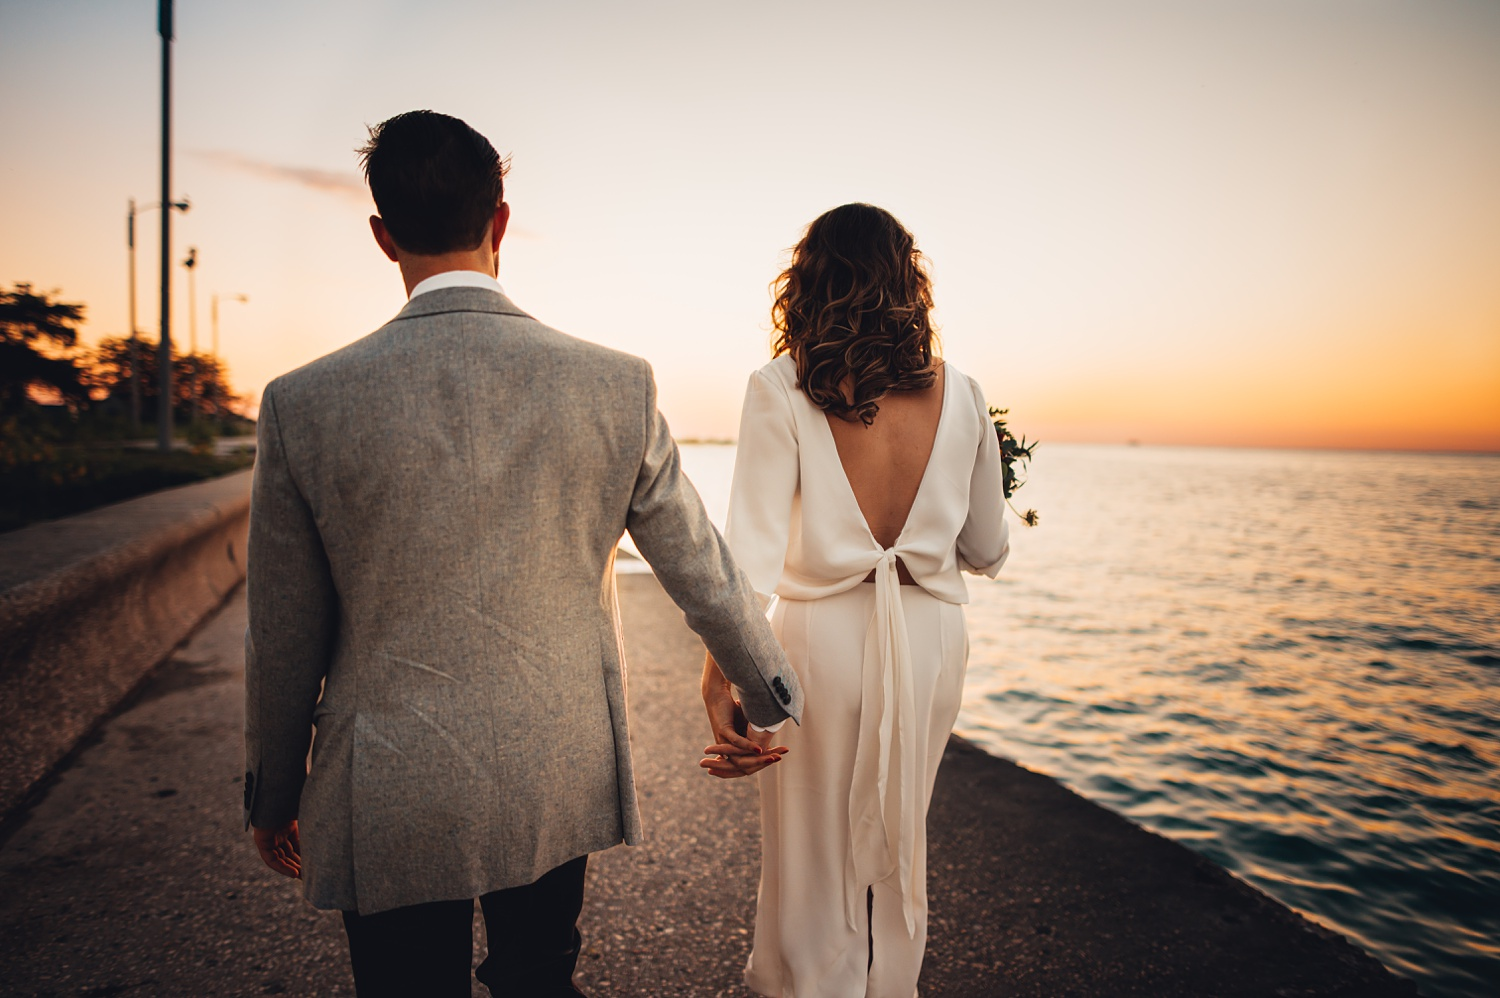 Sunrise Chicago Wedding - The Adamkovi, bride and groom creative portraits